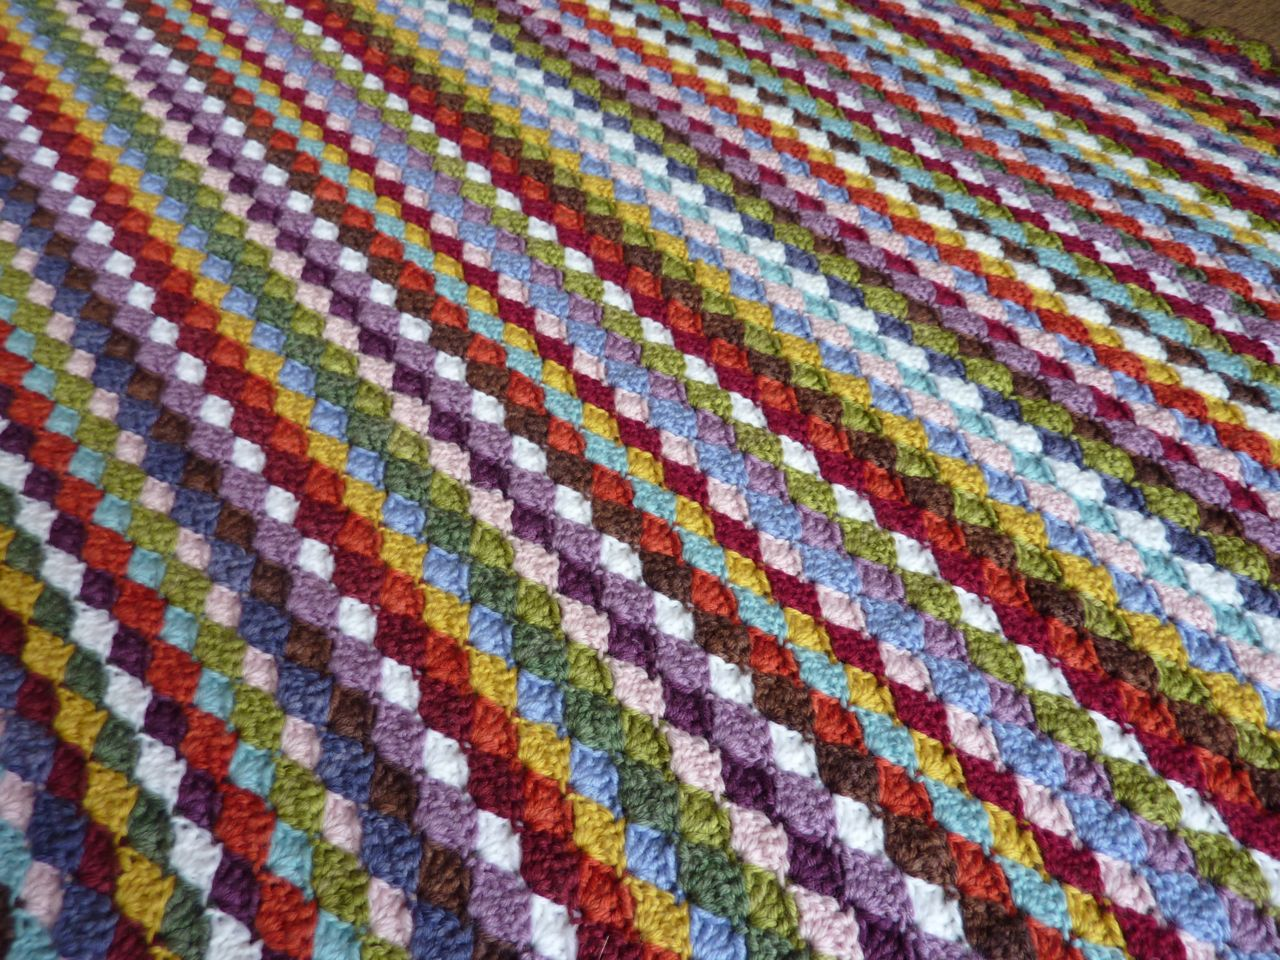 My Rose Valley: Crochet blanket - Voila!